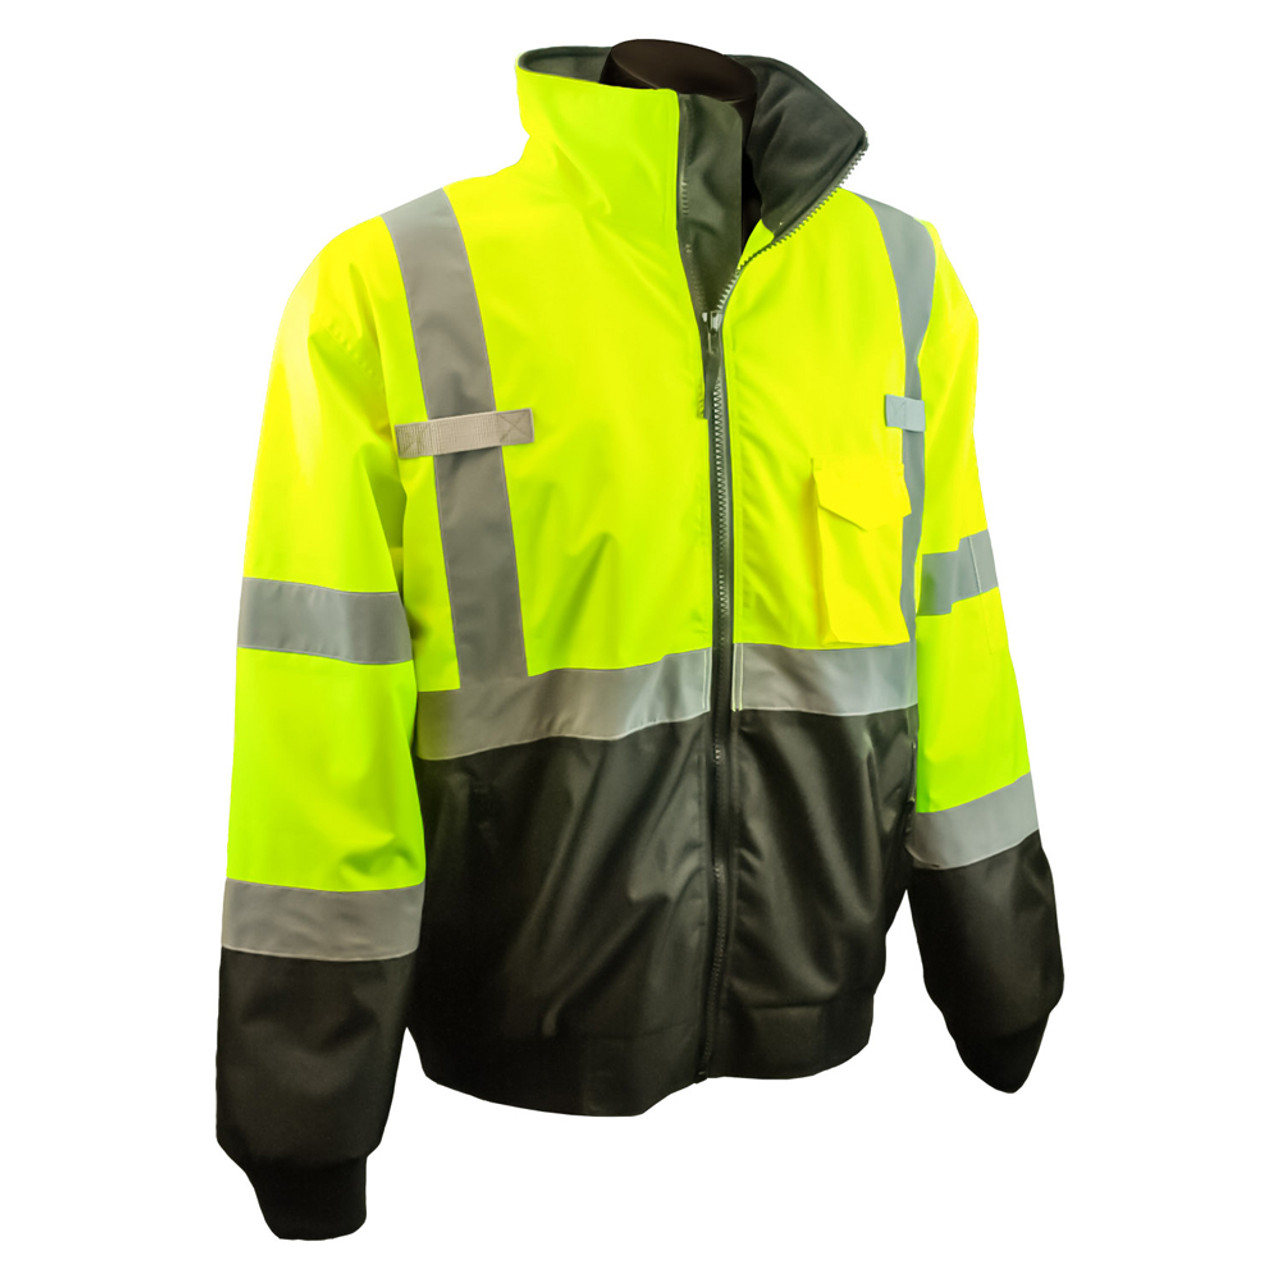 85ce0da0a64 Radians Class 3 Hi-Viz 2-in-1 Removable Liner Bomber Jacket - Aris ...